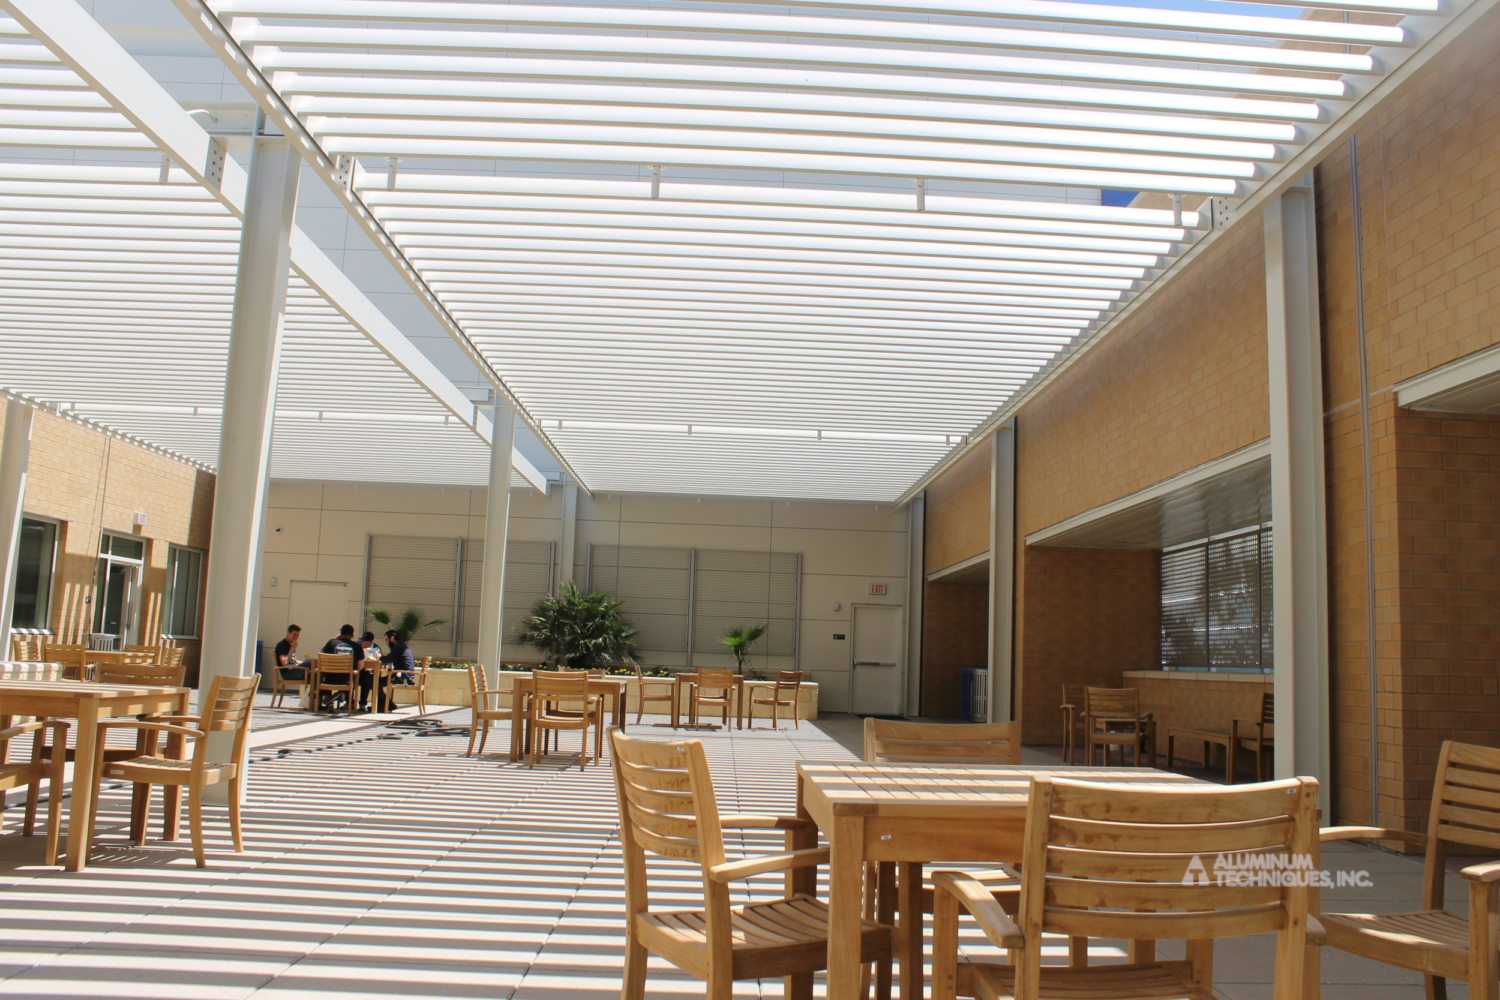 Showing shade structures that protect an outdoor patio.